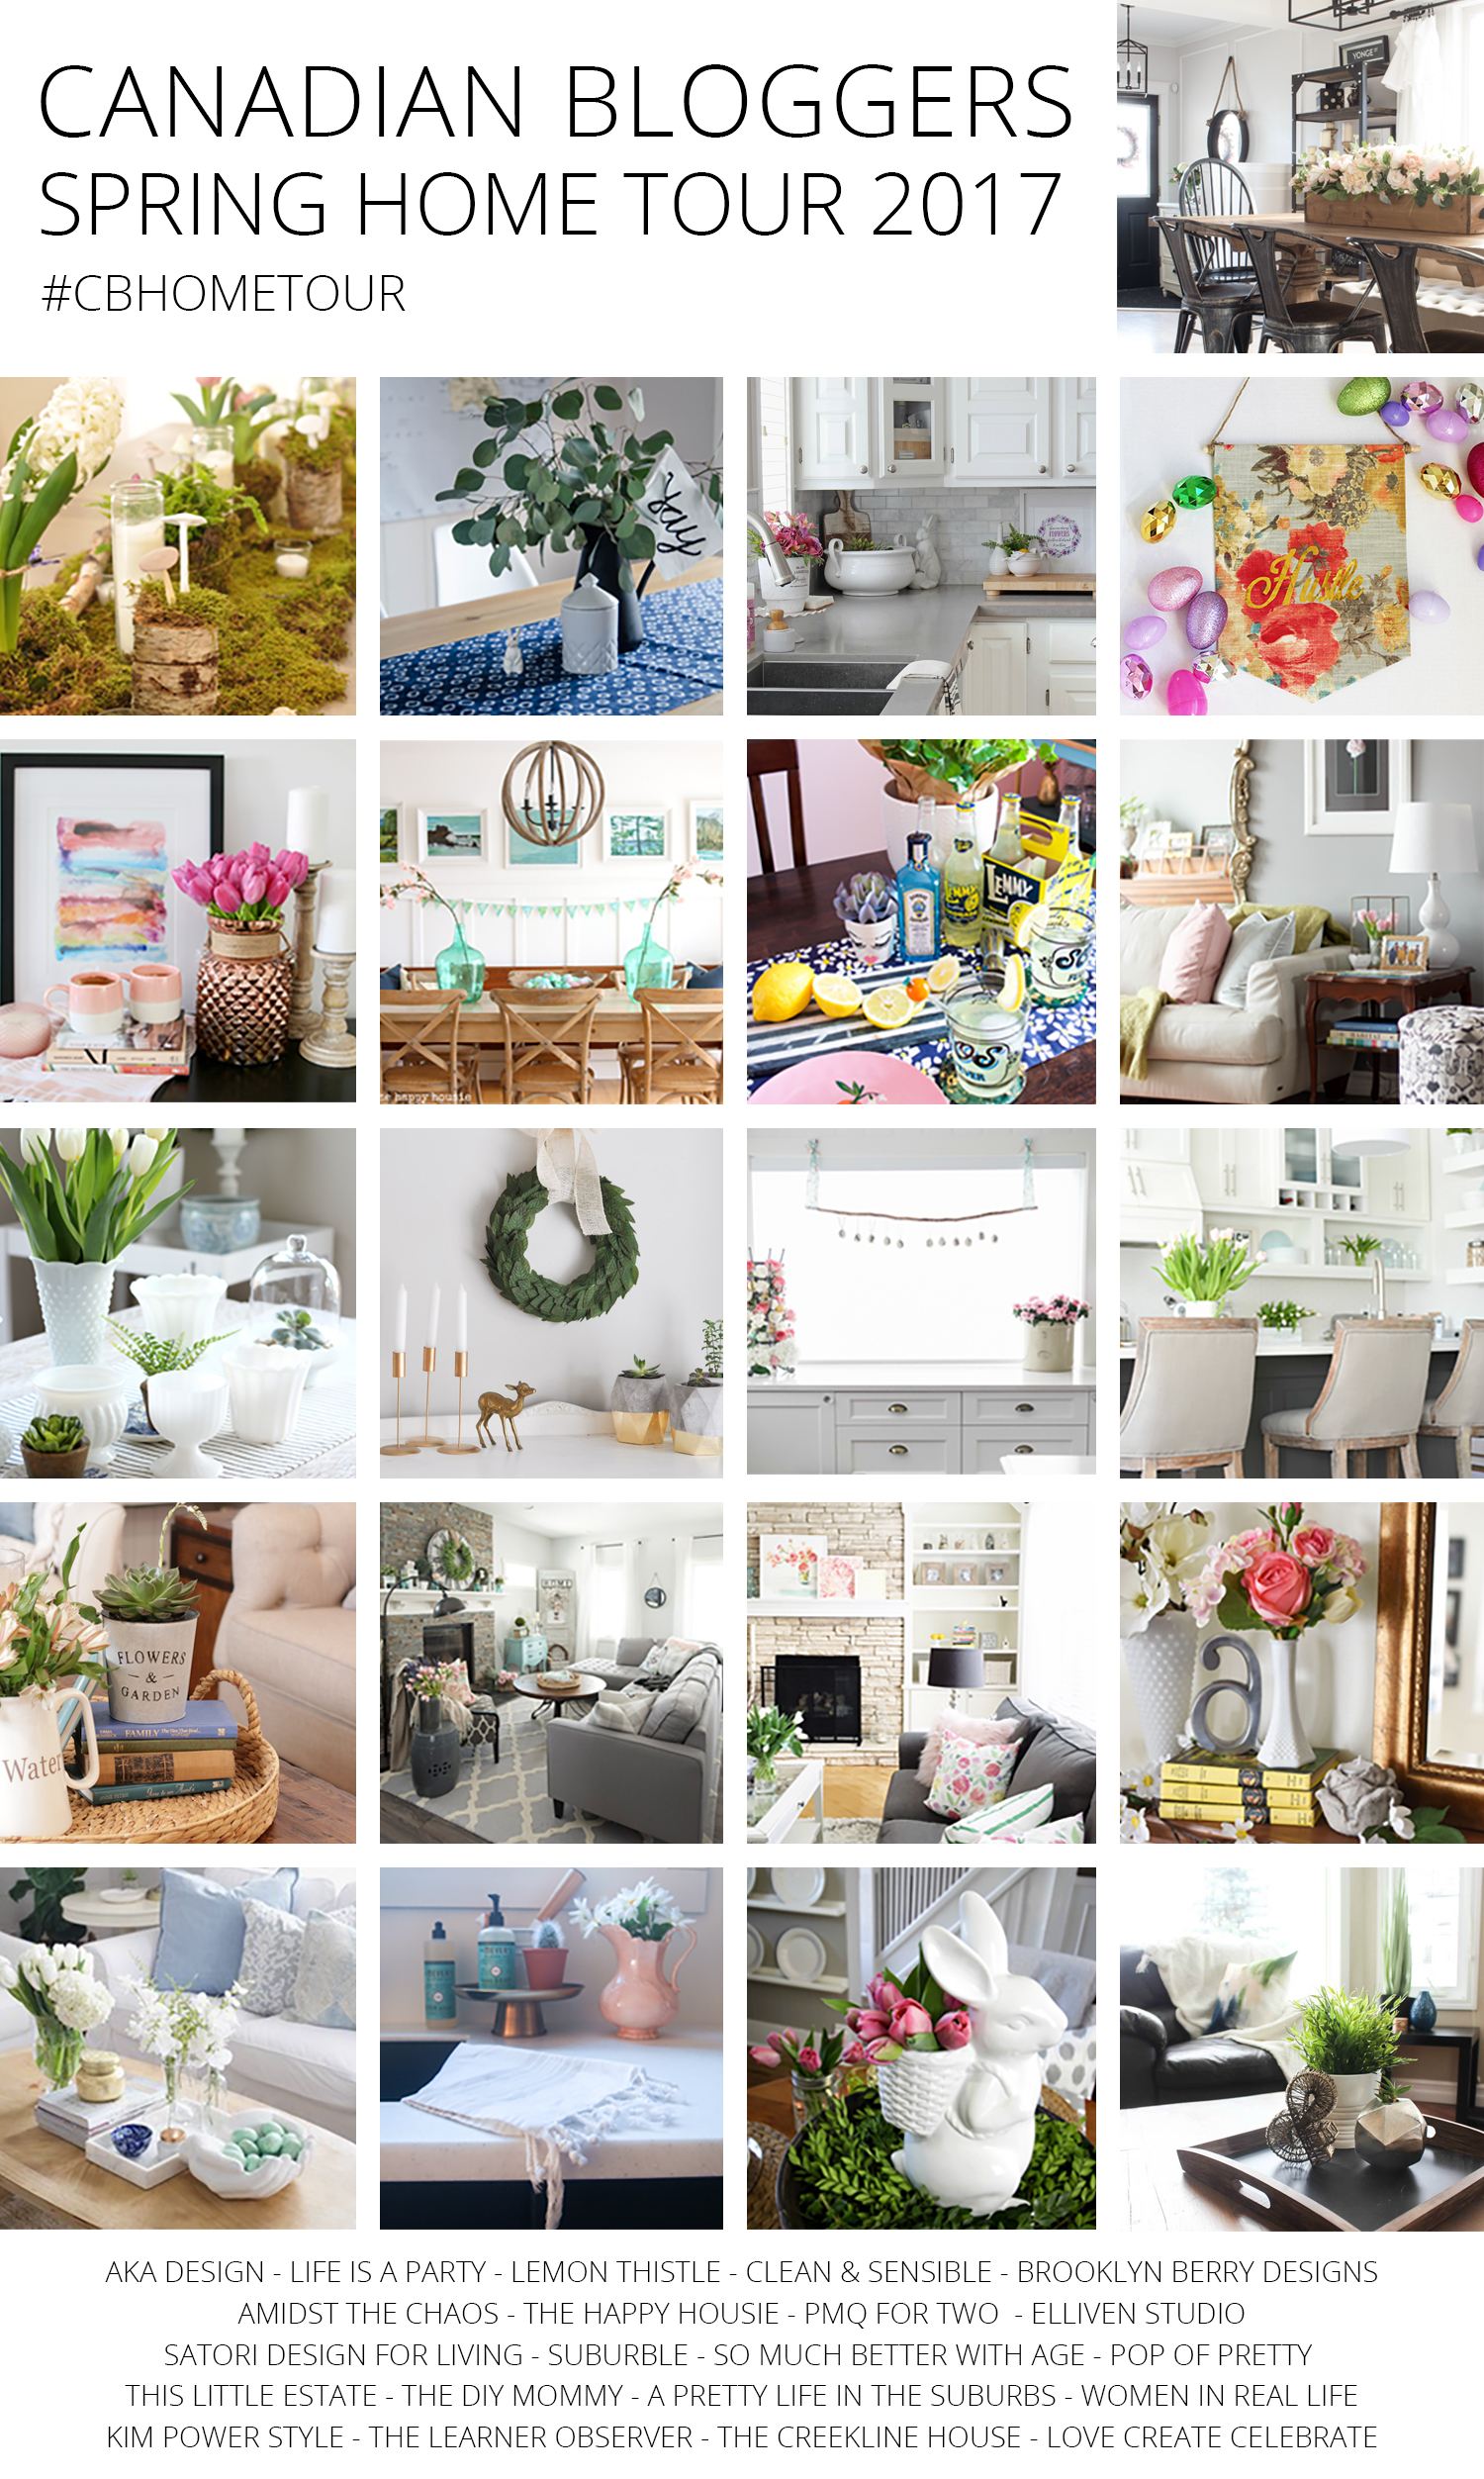 Canadian Bloggers Spring Home Tour Collage 2017